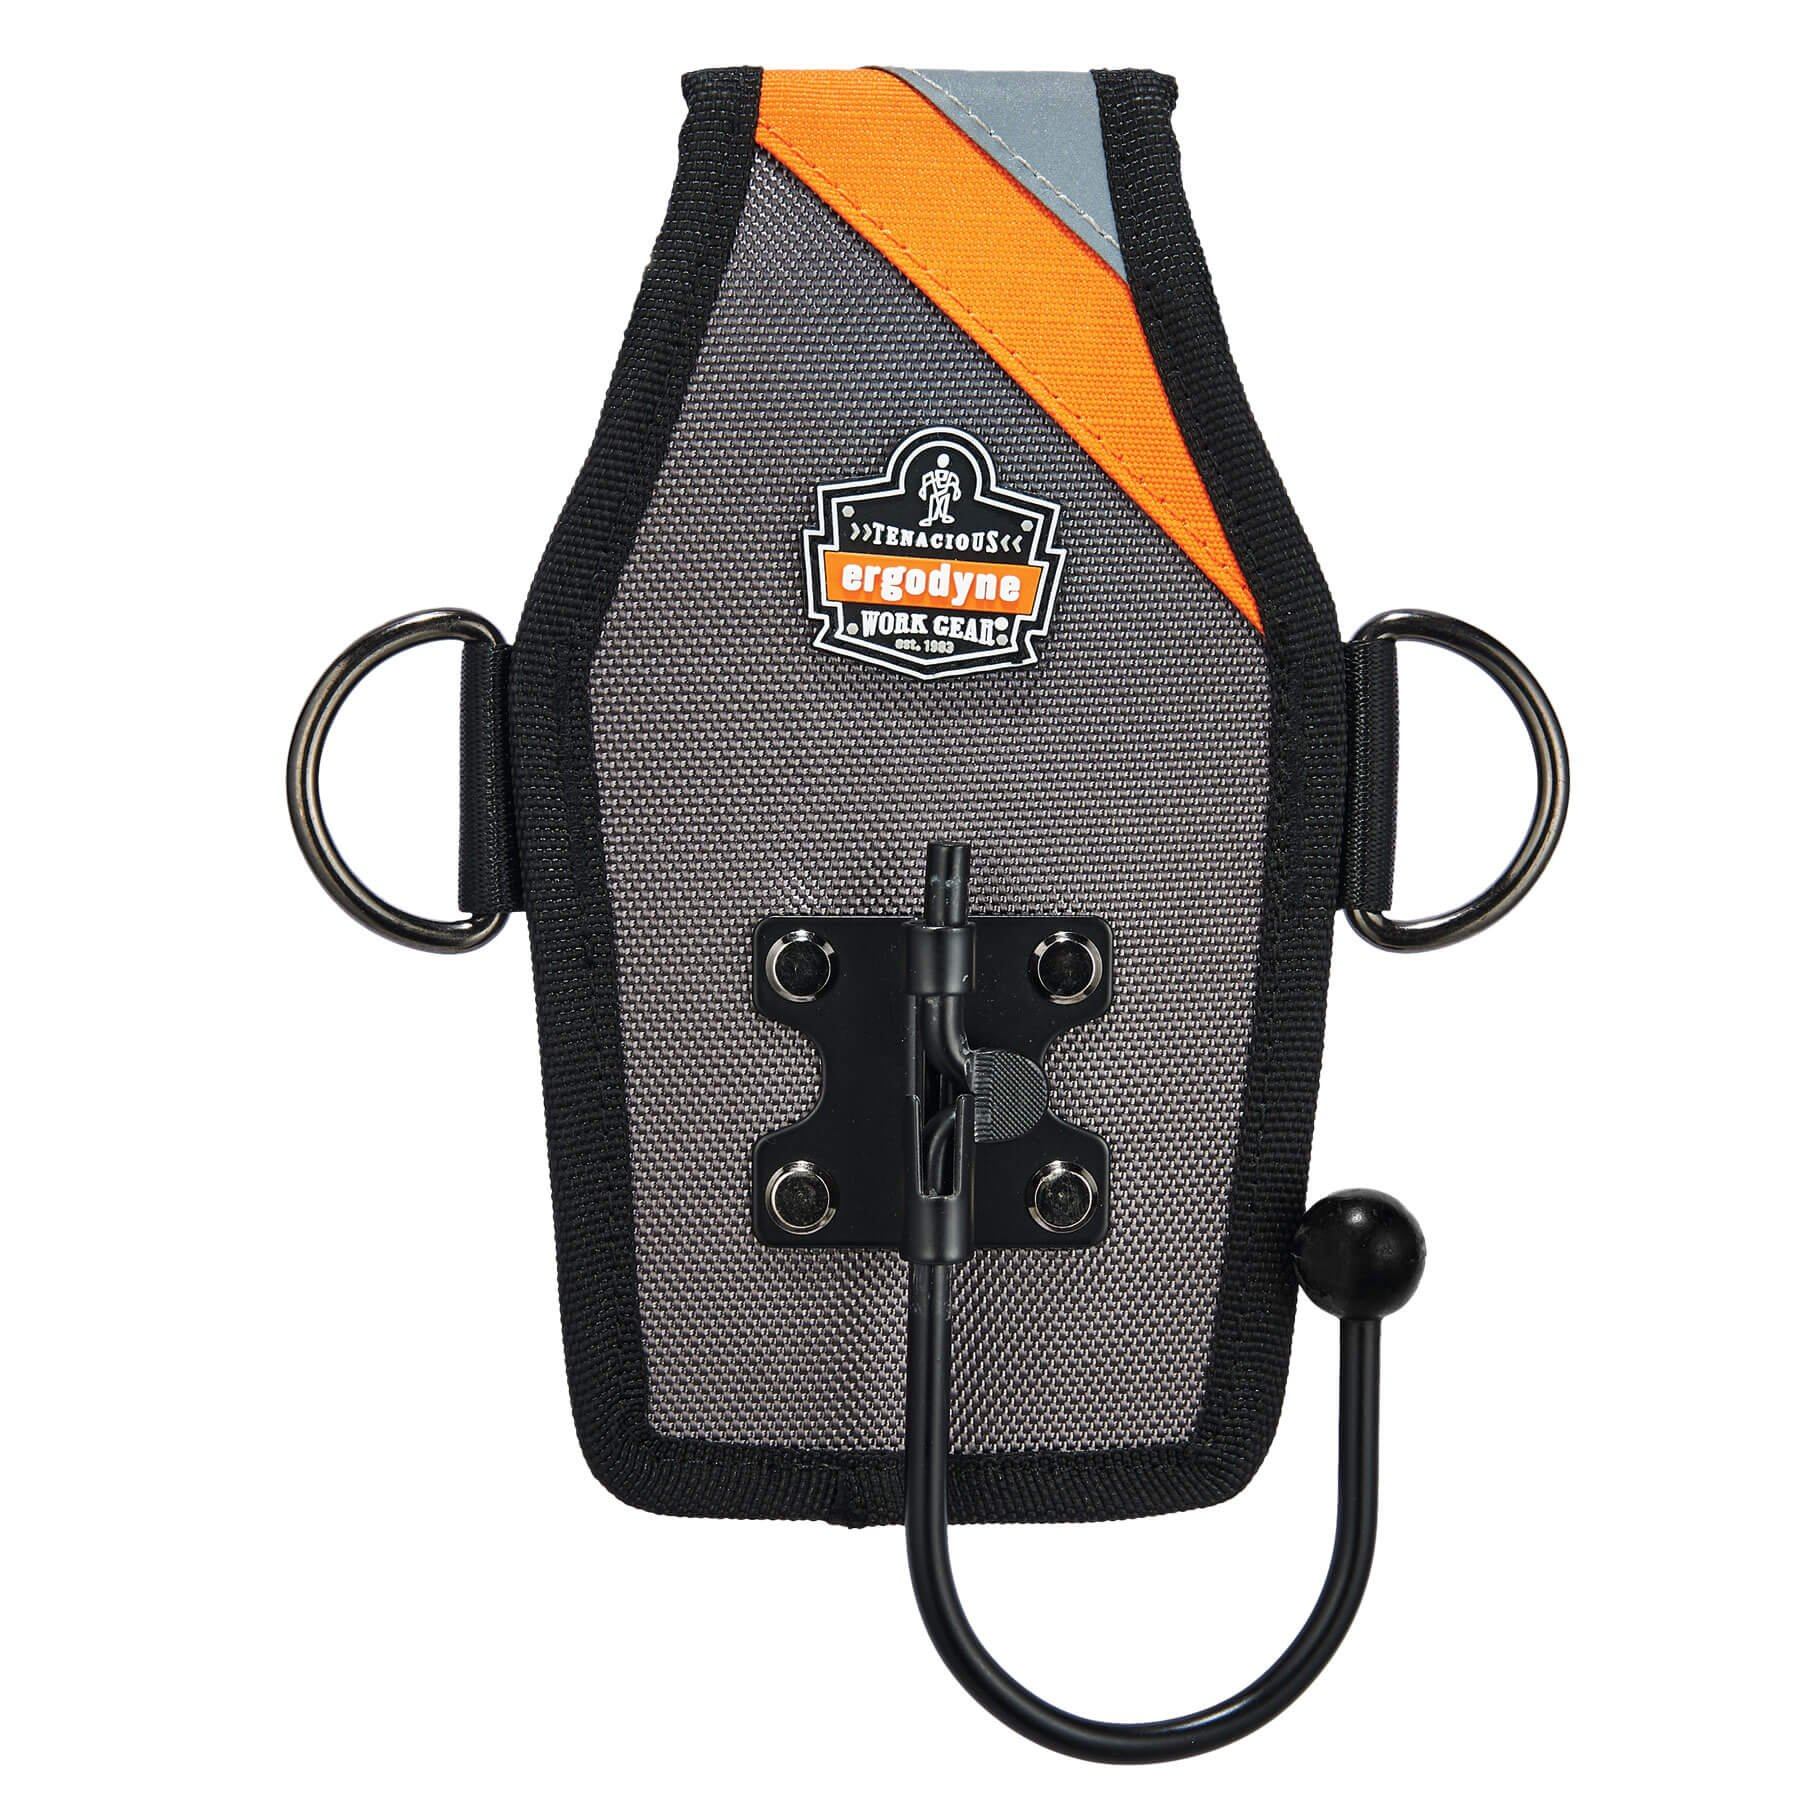 Ergodyne Arsenal 5563 Power Tool Work Belt Holster